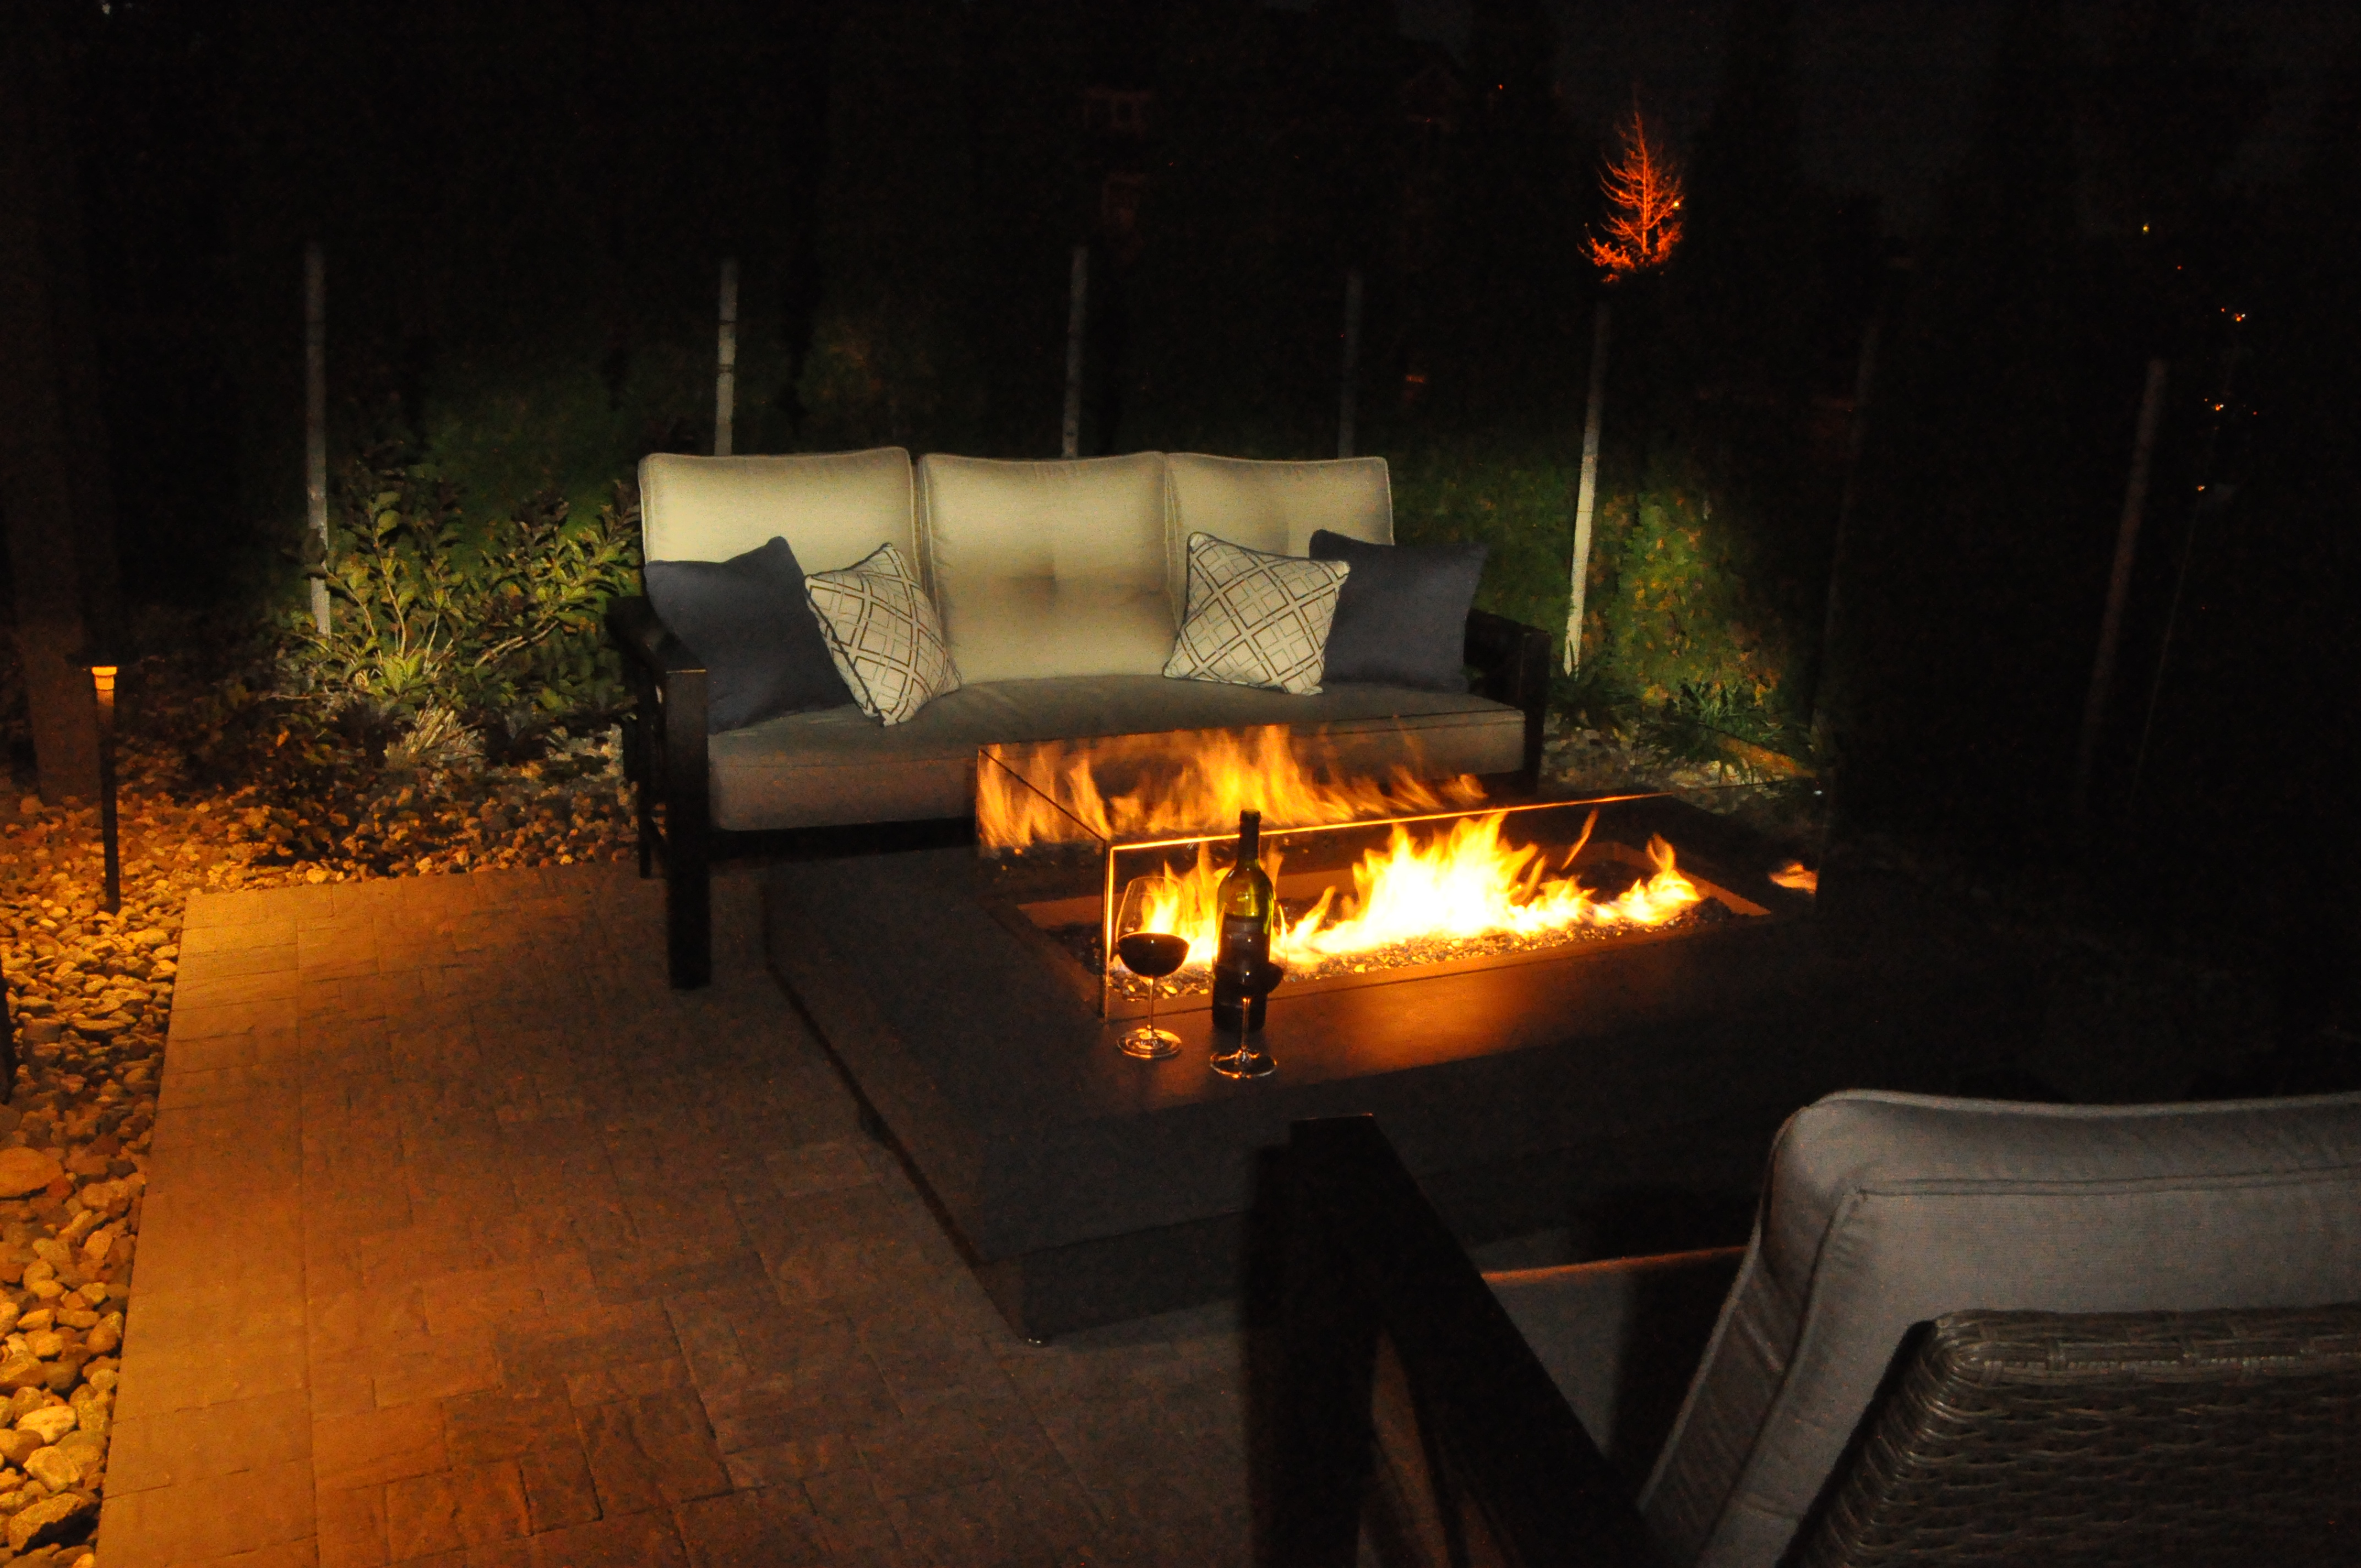 Whether a romantic gathering of two or an evening of many, a fire pit adds warmth to the atmosphere. Designed by Steve Bauer and installed by Embassy Landscape Group.